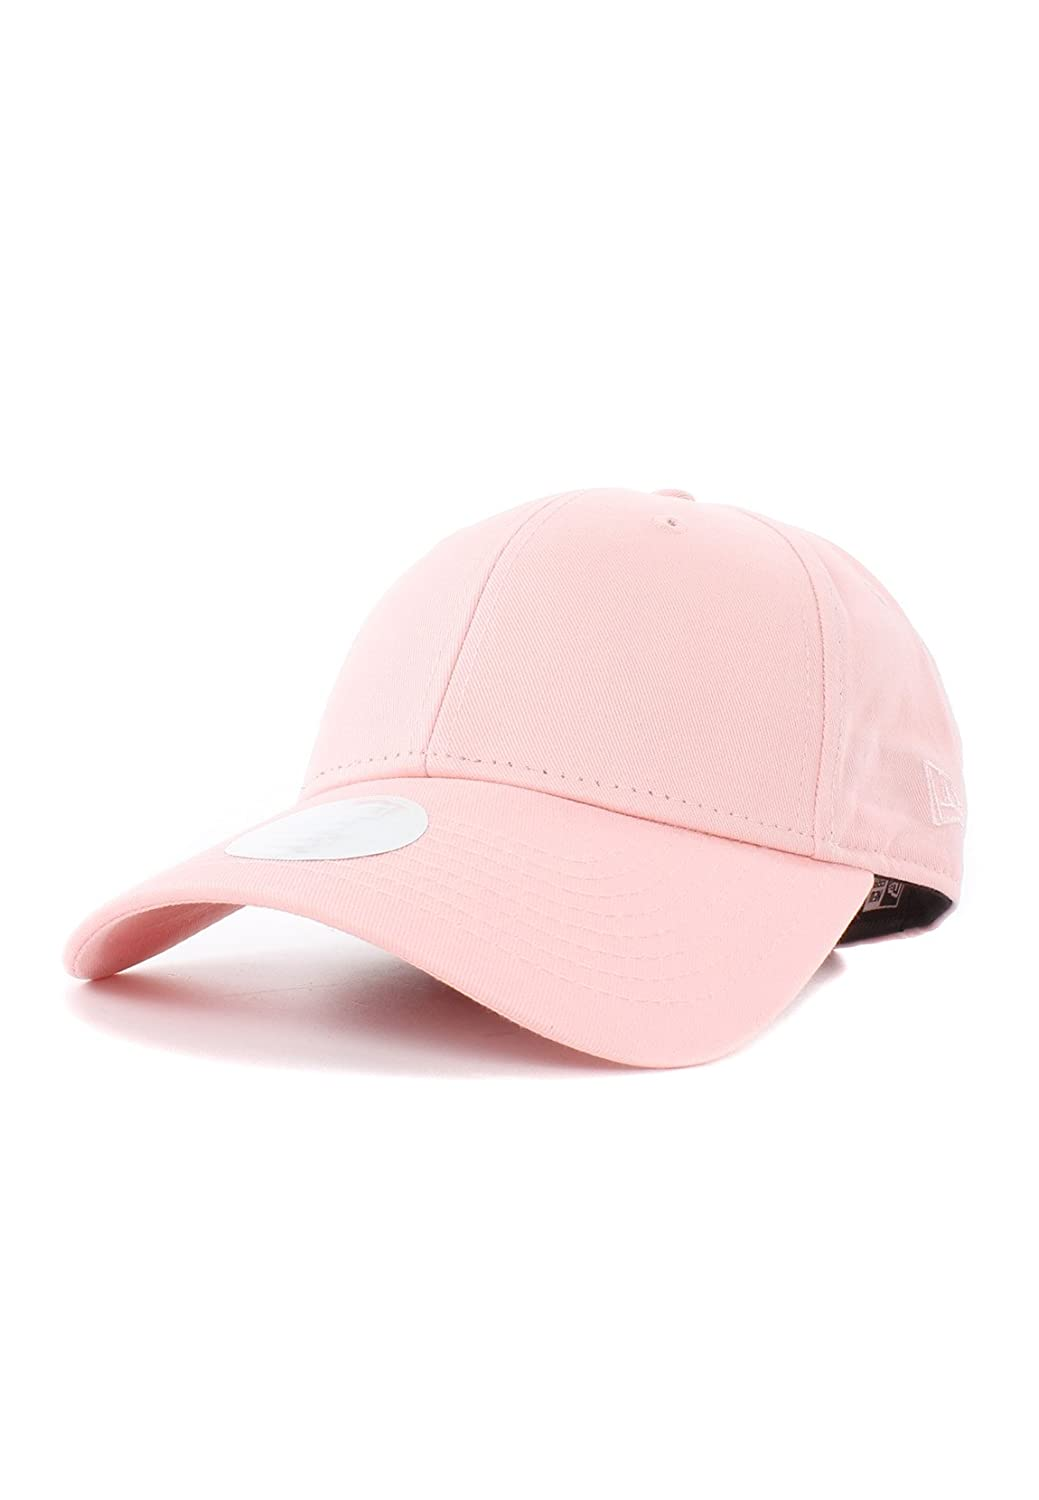 uk goedkope verkoop om te kopen uitchecken Amazon.com: New Era 9Forty Pastel Pink Lemonade Women's Cap ...